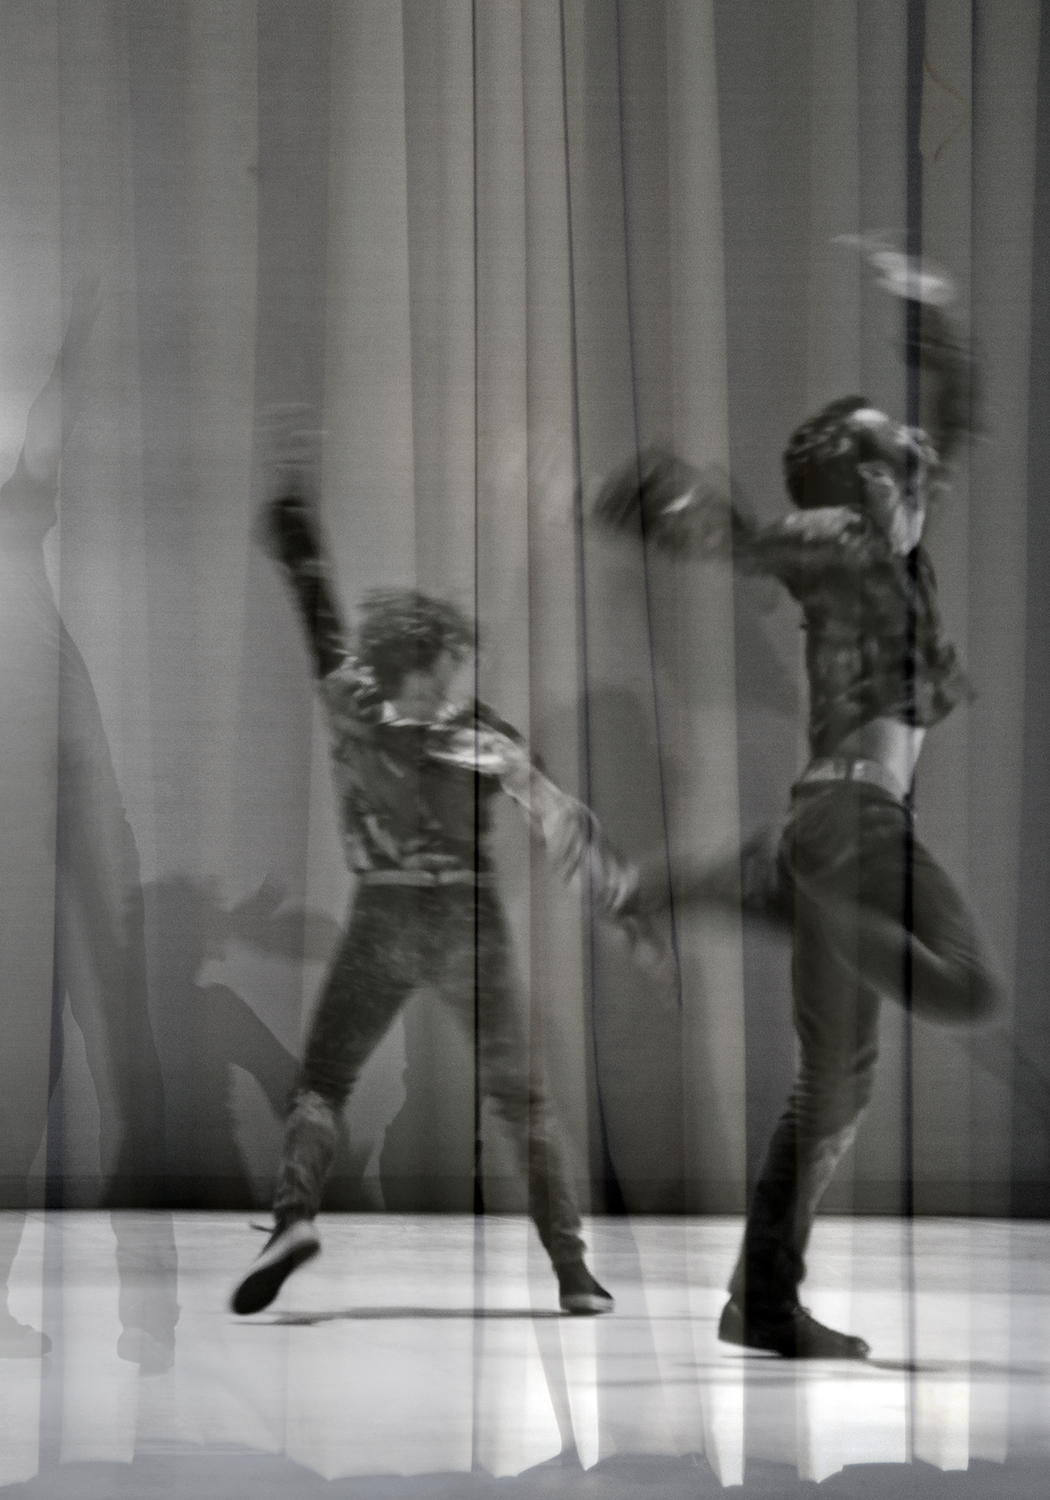 carina martins, dialogues in unimaginated places - overlapped photographies of dancers